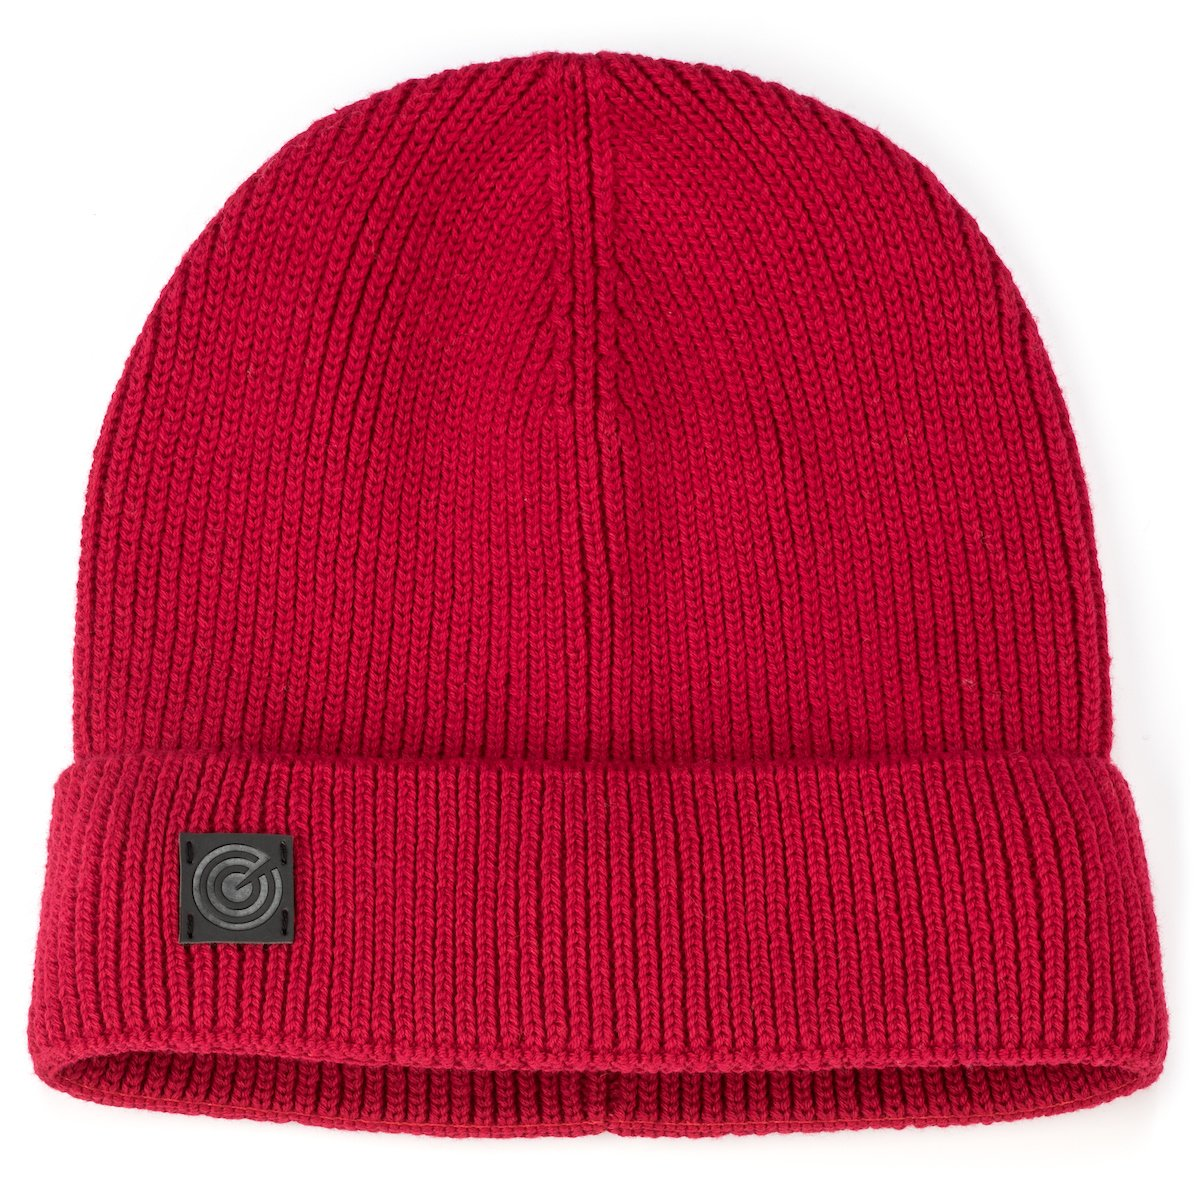 Evony Light Cotton Skull Beanie - Red